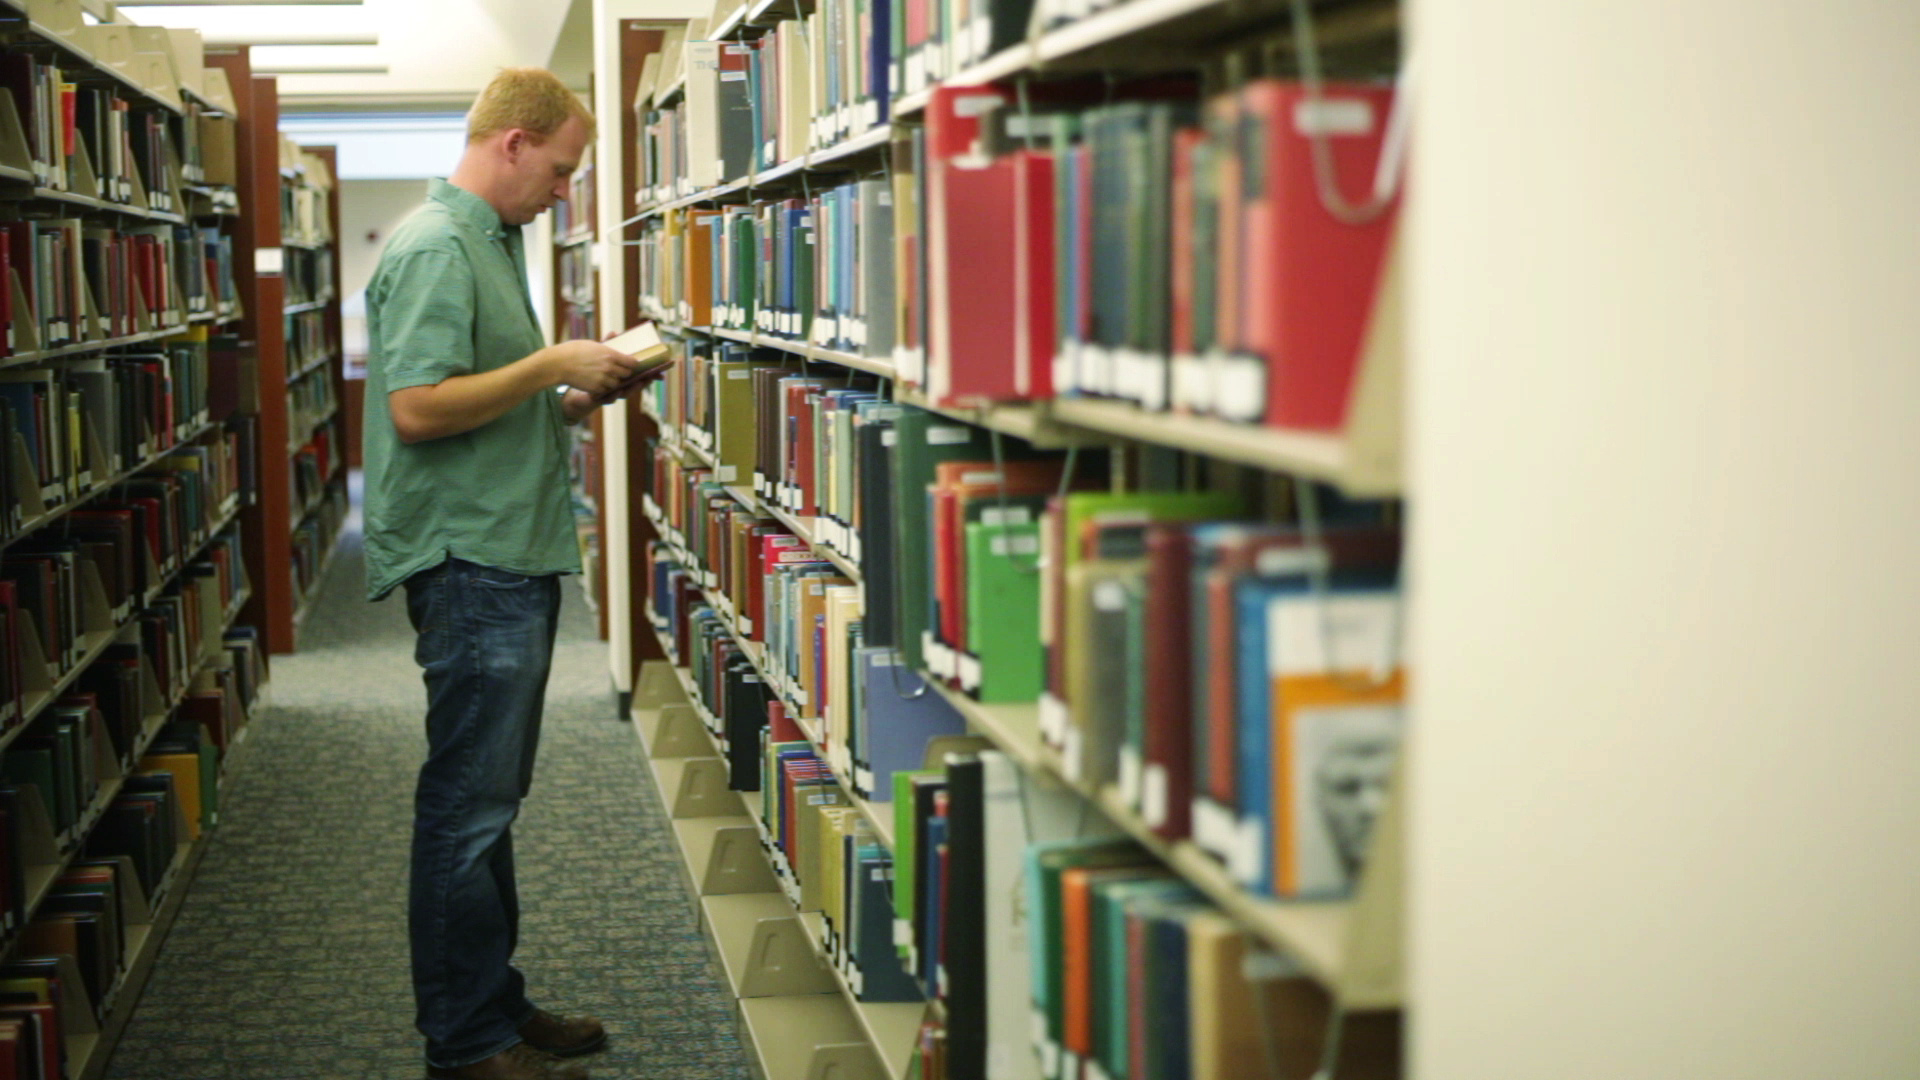 Student in library searching through a bookshelf